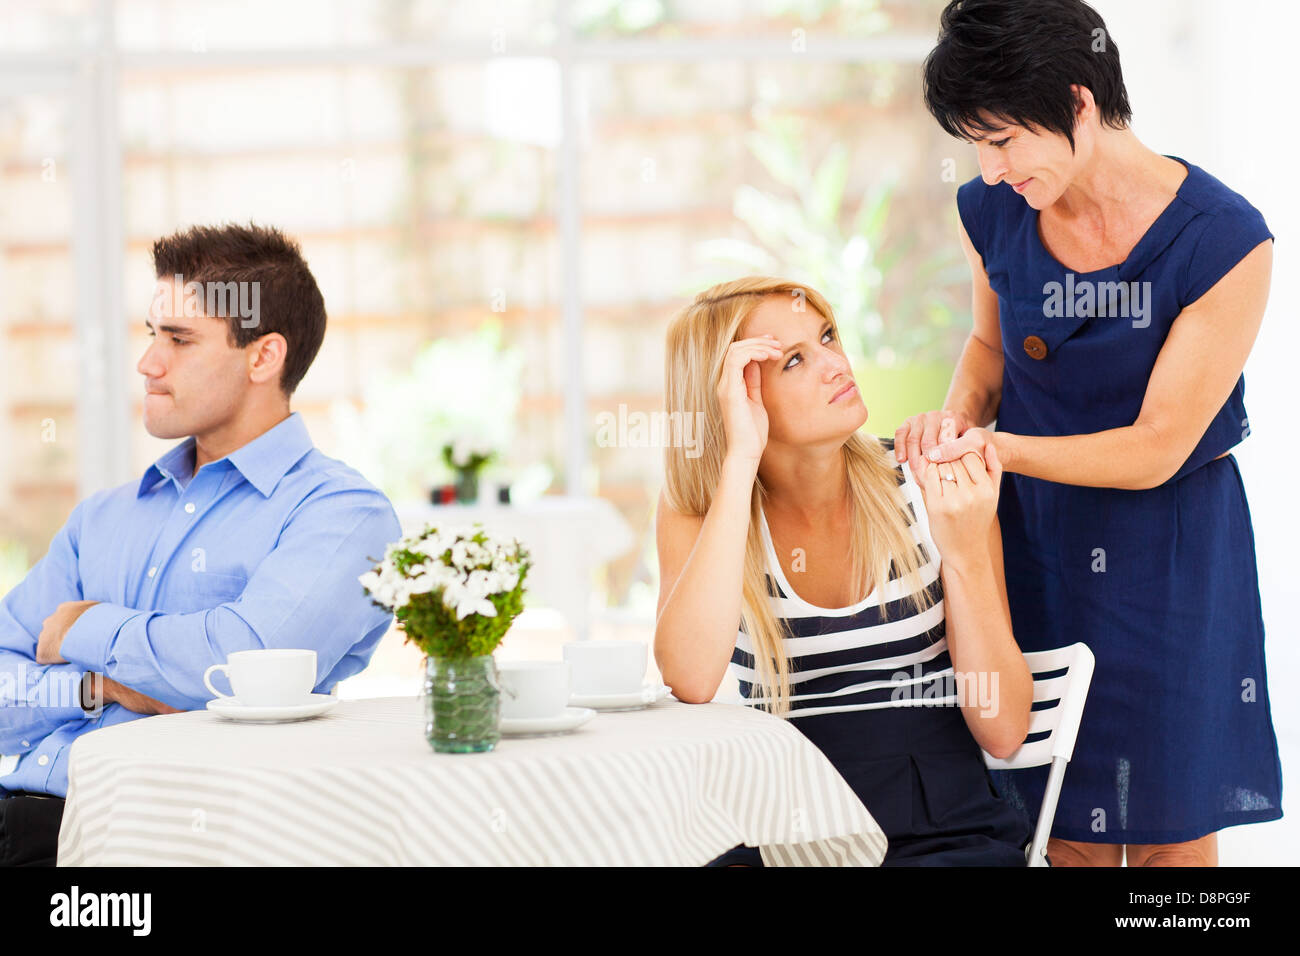 caring mother standing by her daughter when she has marriage problem - Stock Image